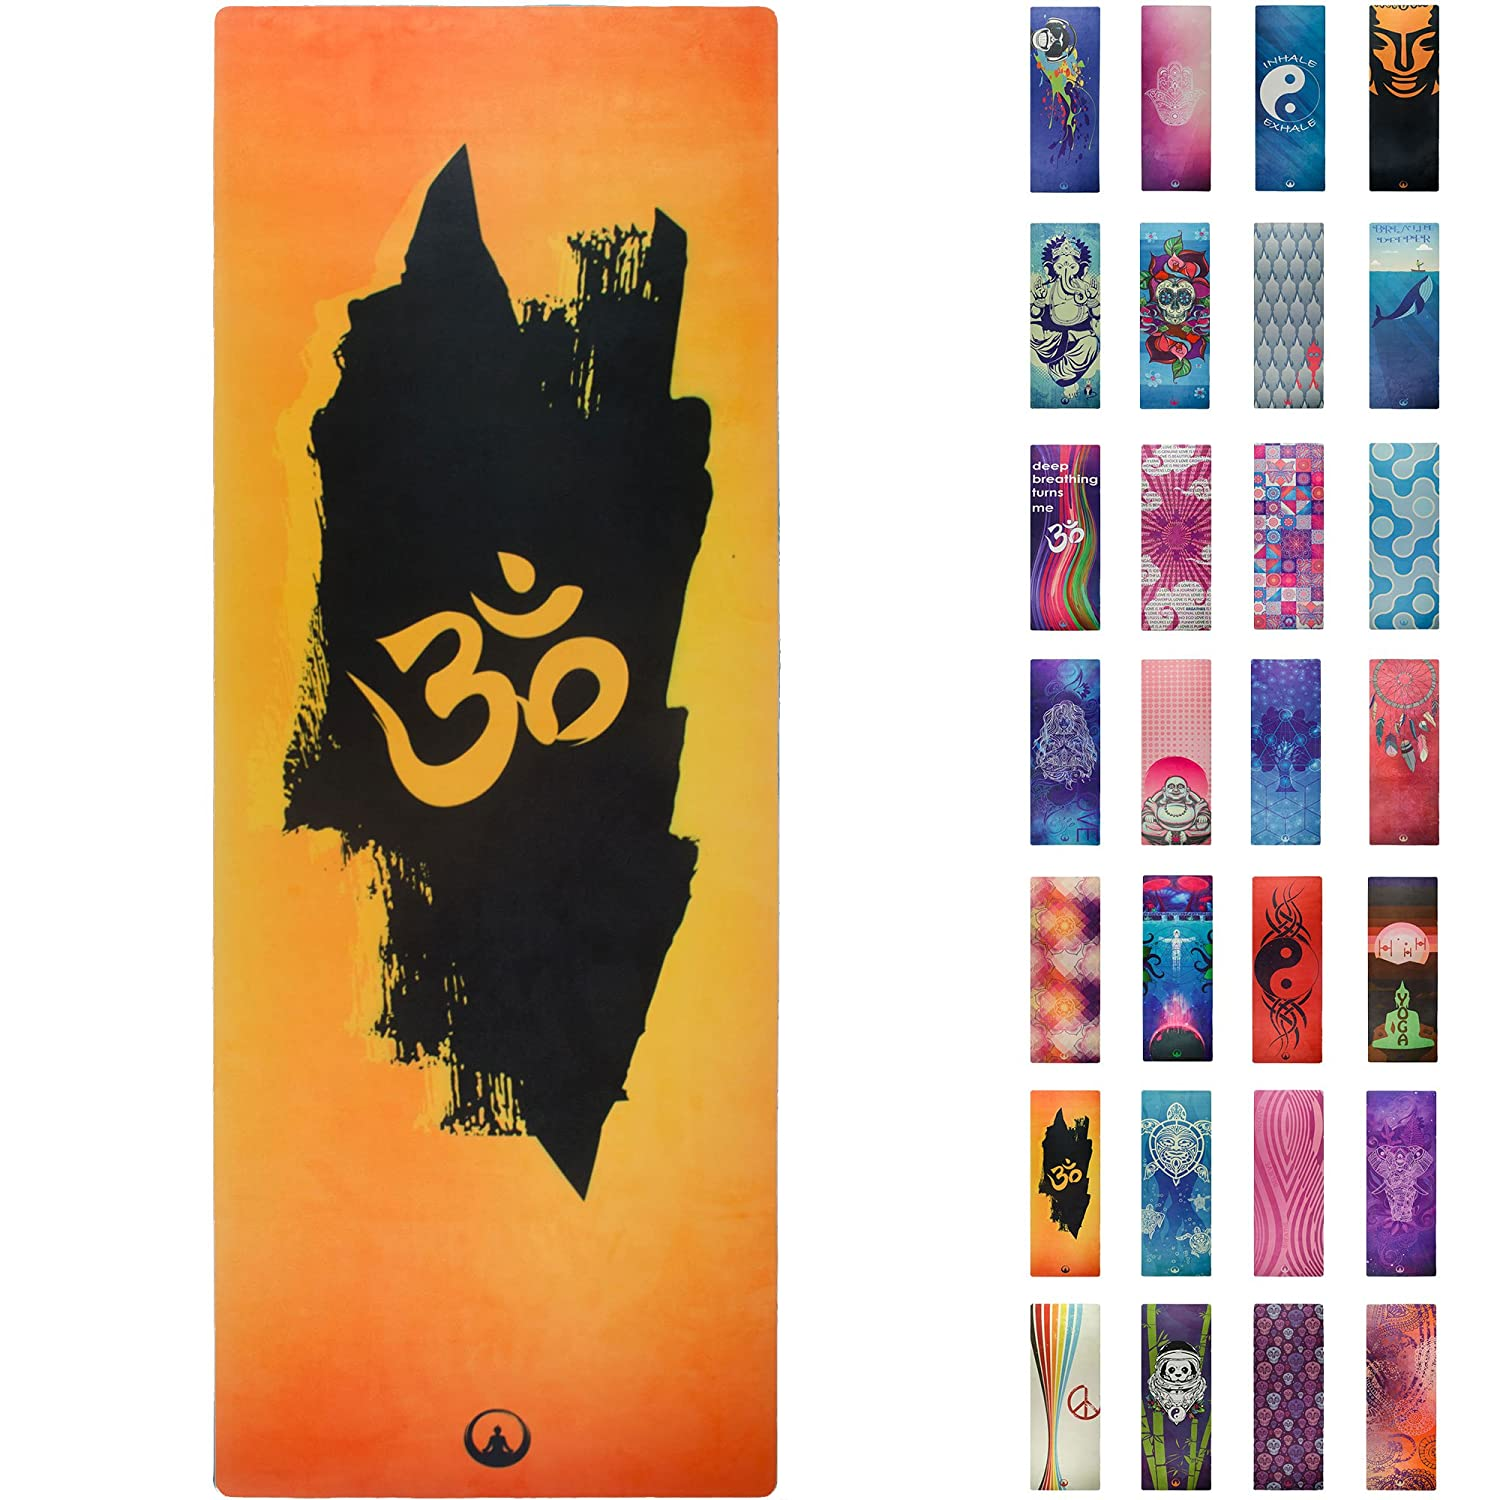 towels slip pin eva mats printing printed and yoga non mat durable highly